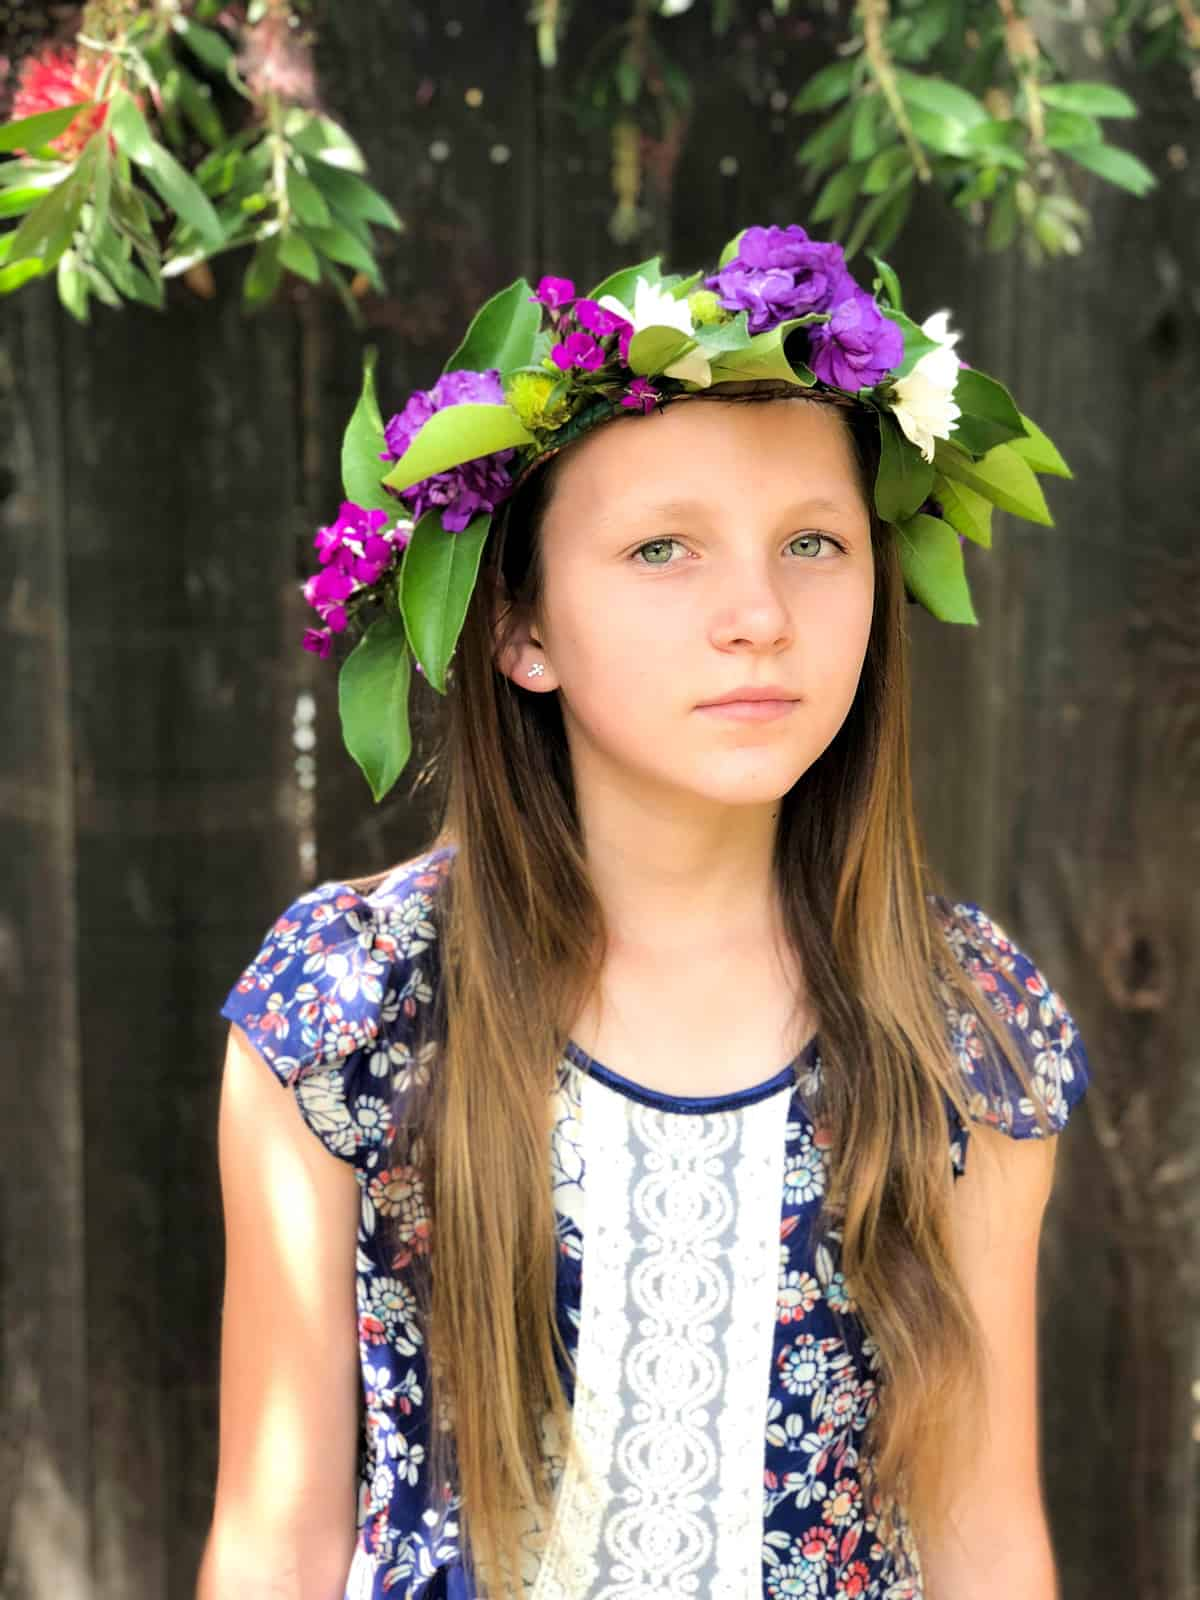 How to make a Floral Crown for a wedding or graduation ceremony!